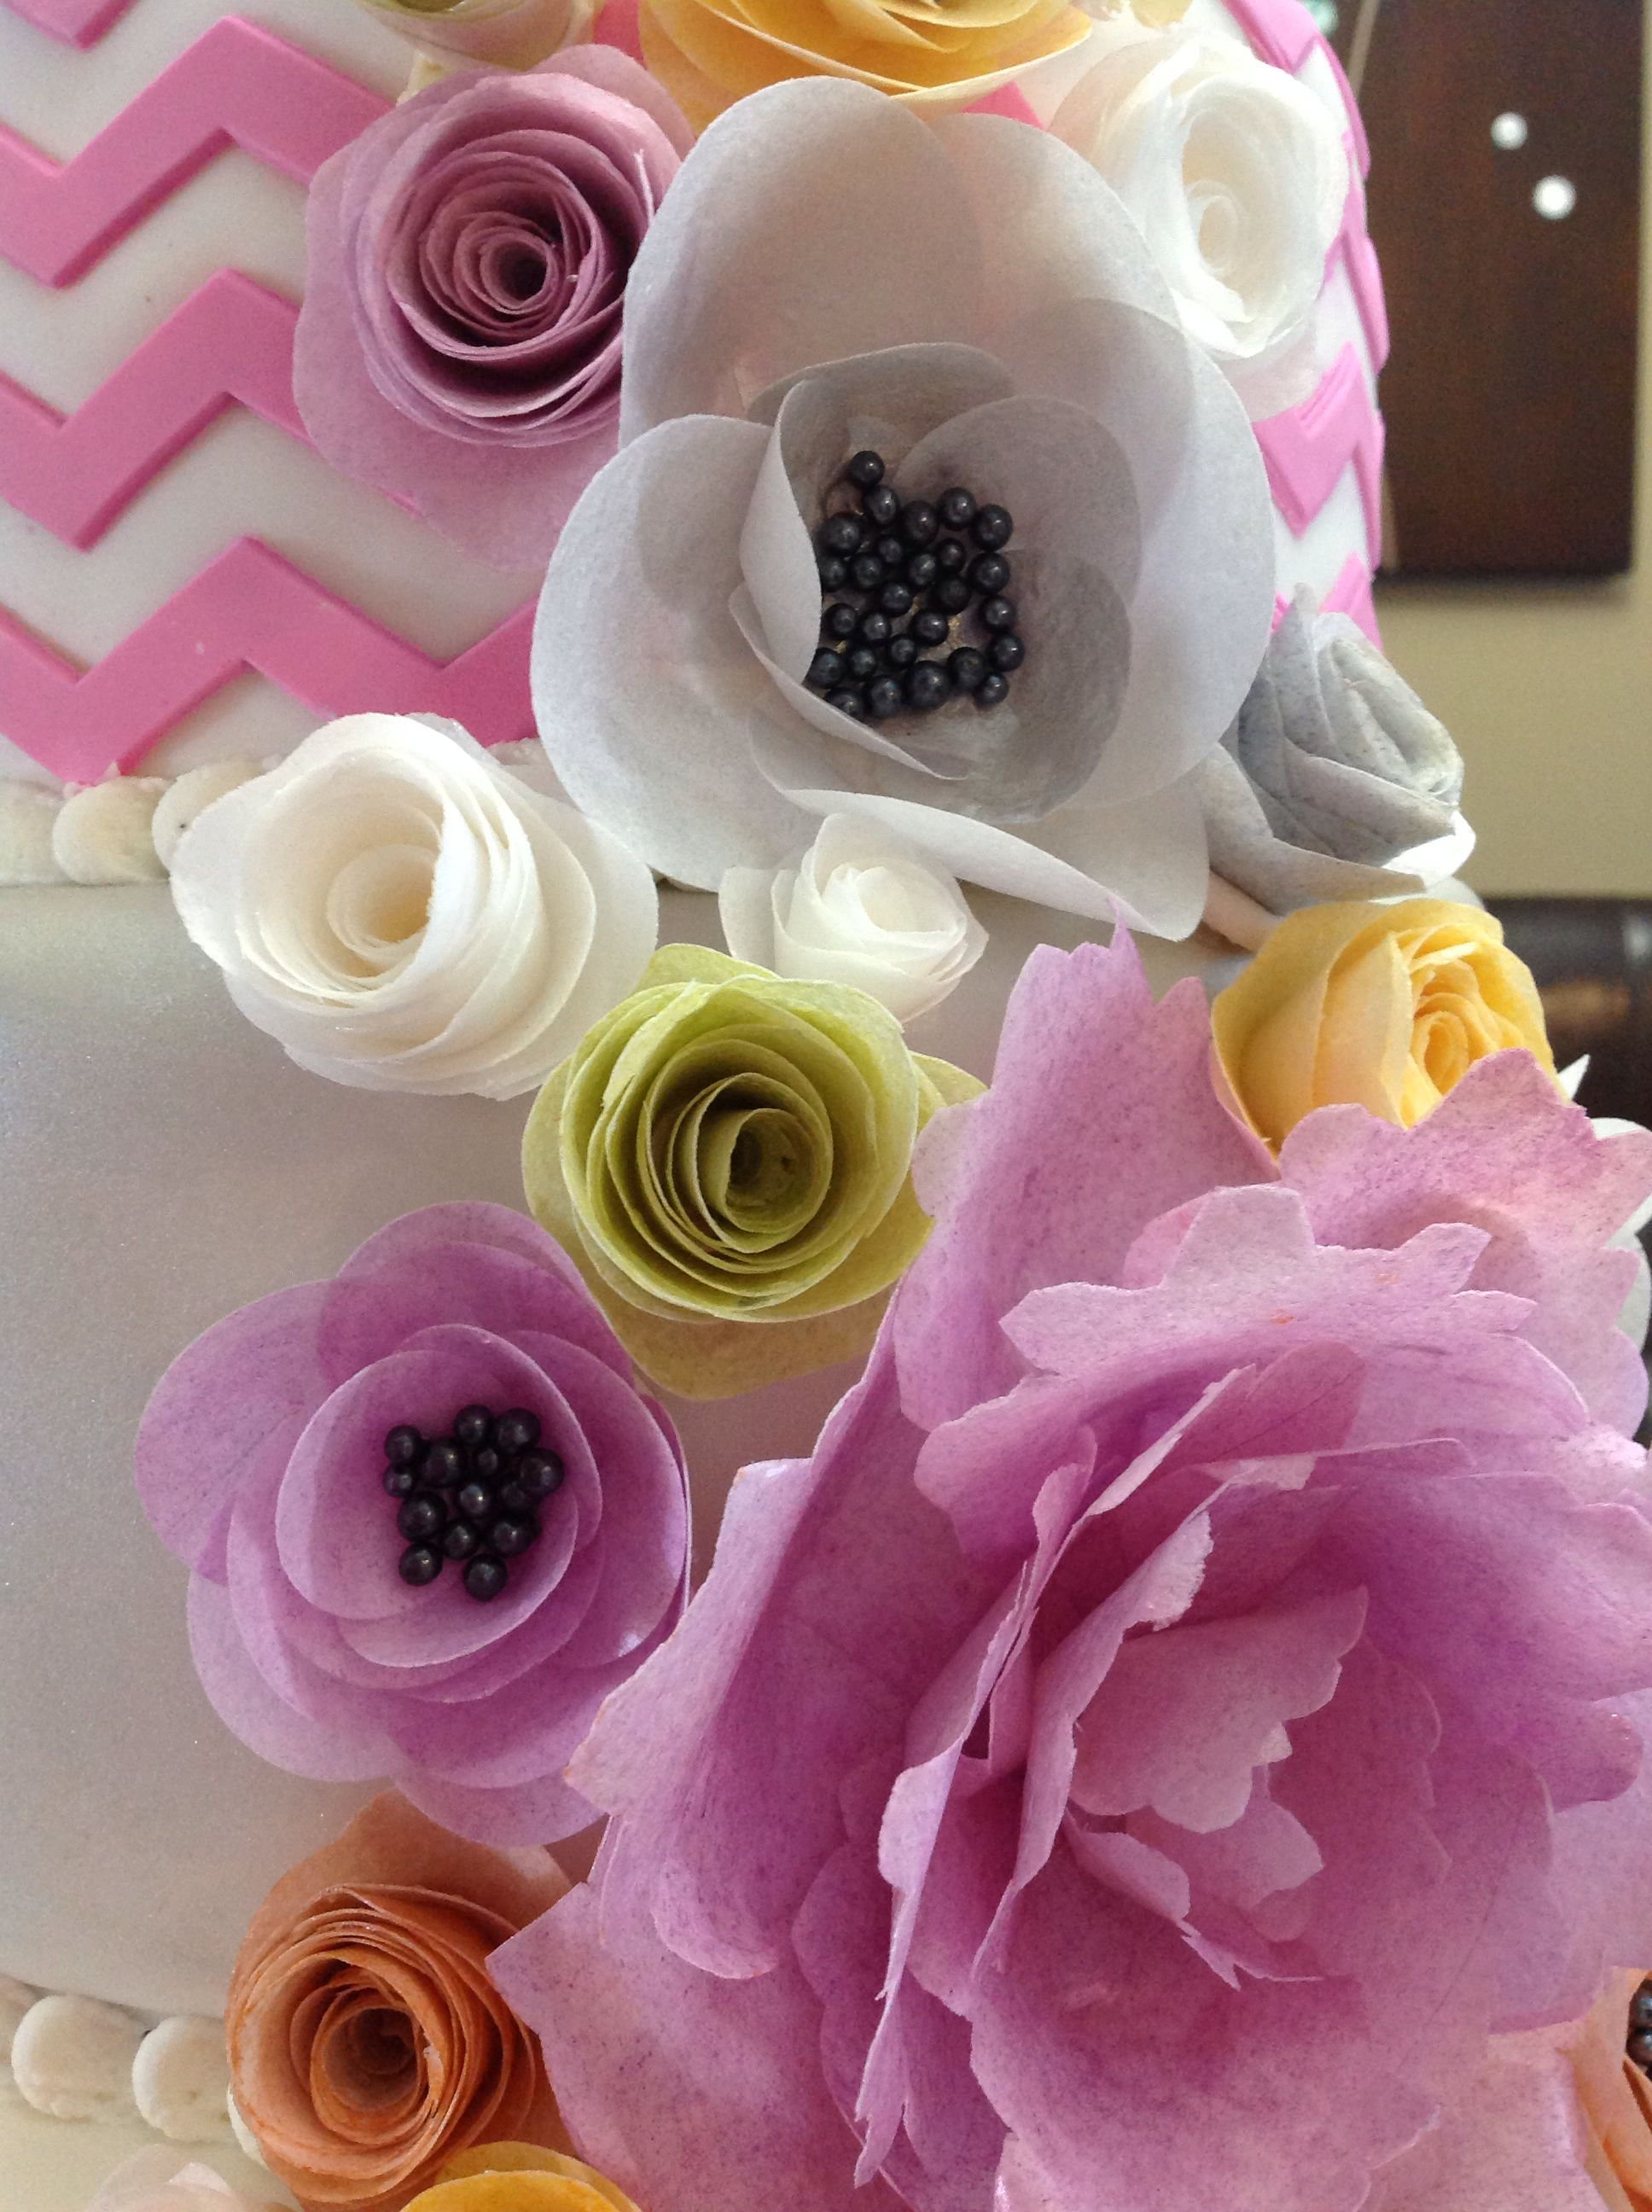 Rice paper flowers my cakes pinterest rice paper rice and rice paper flowers mightylinksfo